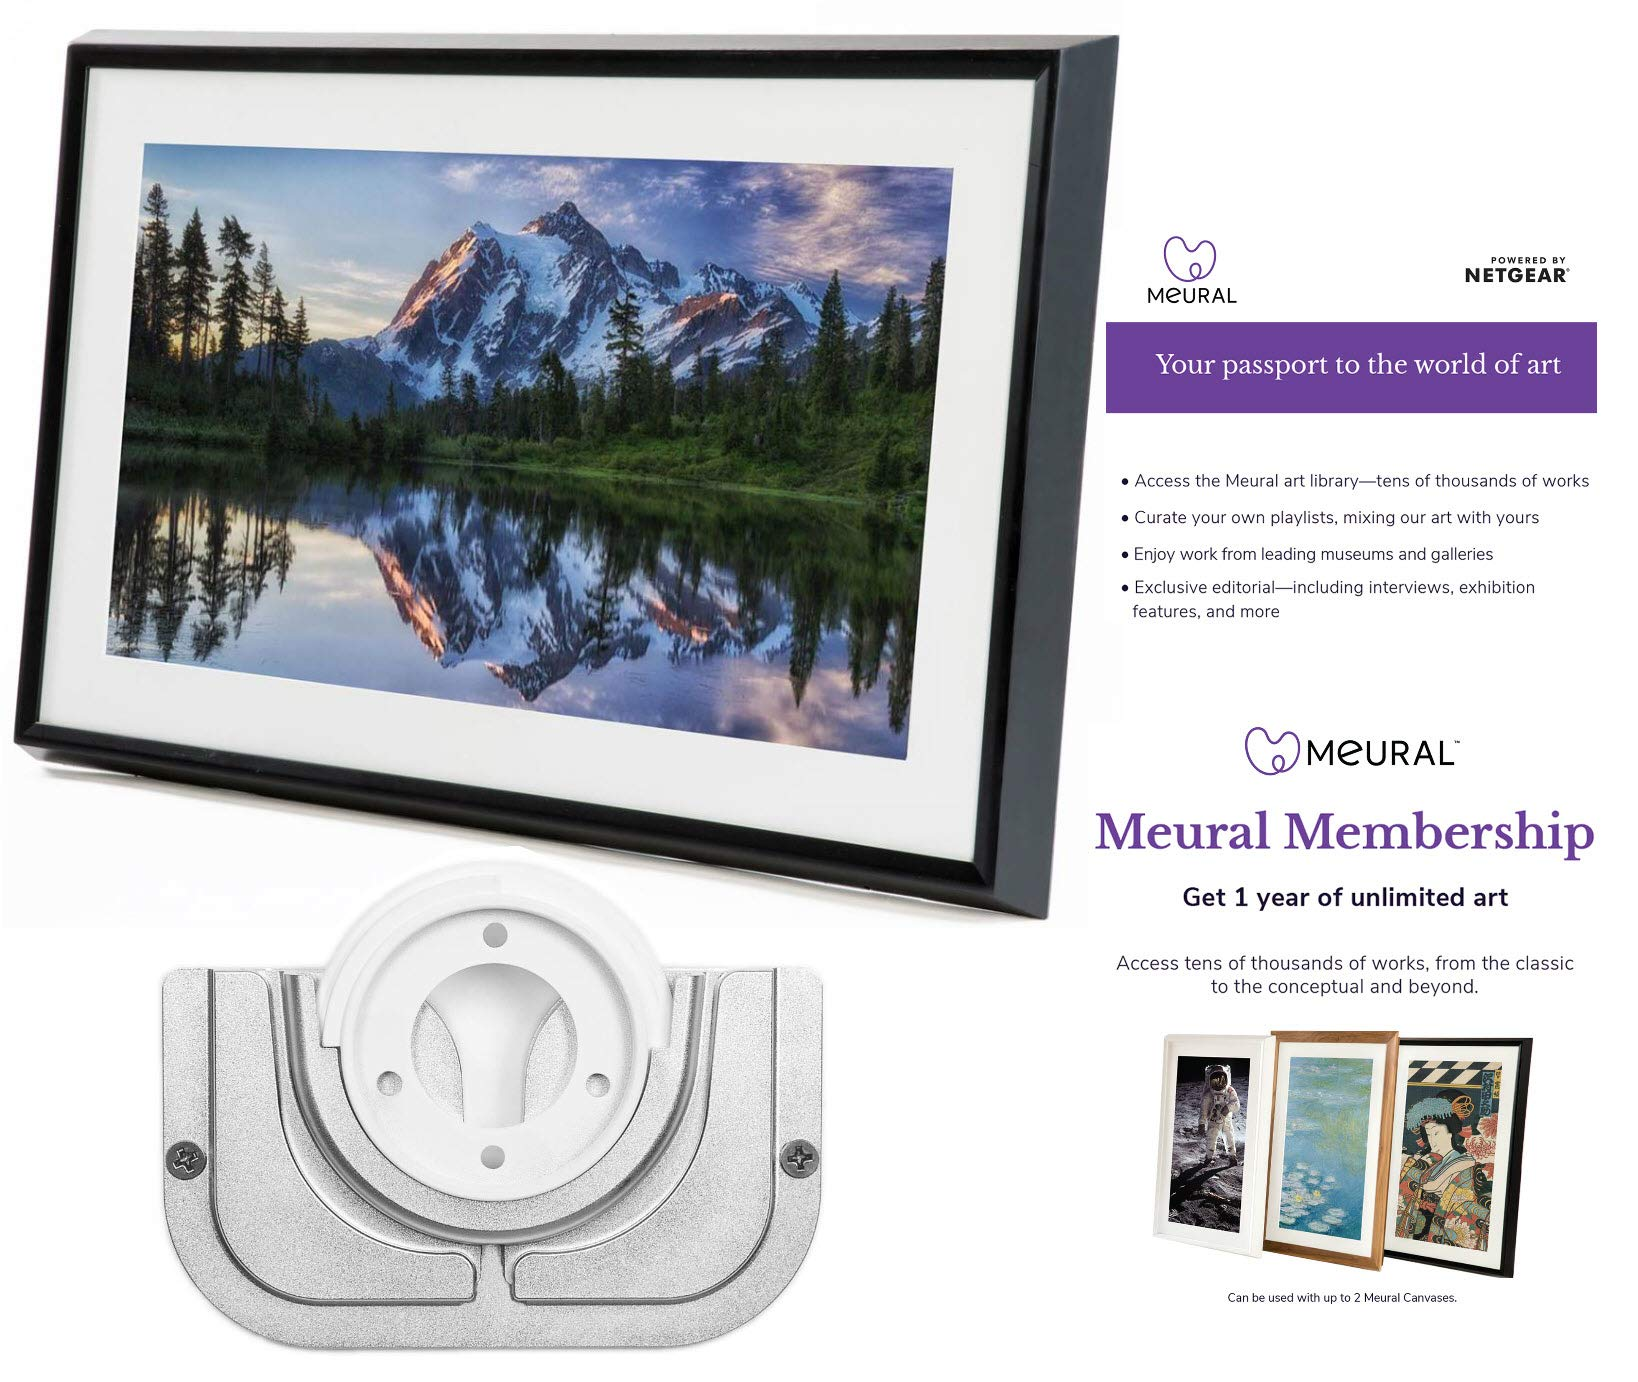 Meural Canvas - Smart Digital Photo Frame - Art Display | Leonora Black | Swivel Wall Mount | 27 inch HD Display with WiFi | Smart Home Compatible | Includes One-Year Membership to Art Library by Meural (Image #1)